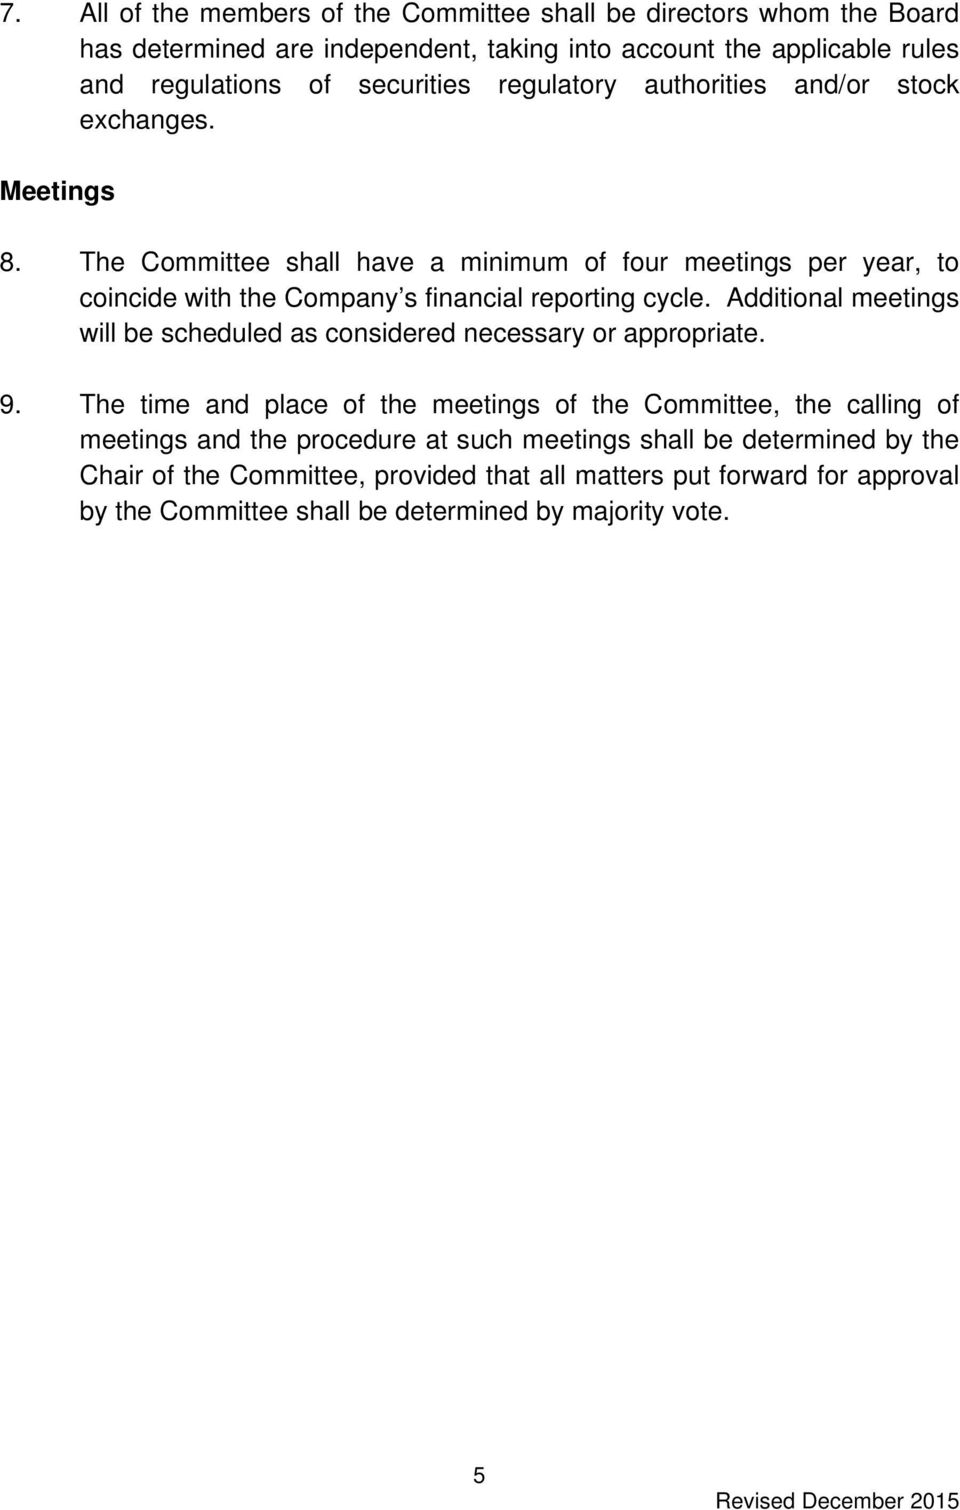 The Committee shall have a minimum of four meetings per year, to coincide with the Company s financial reporting cycle.